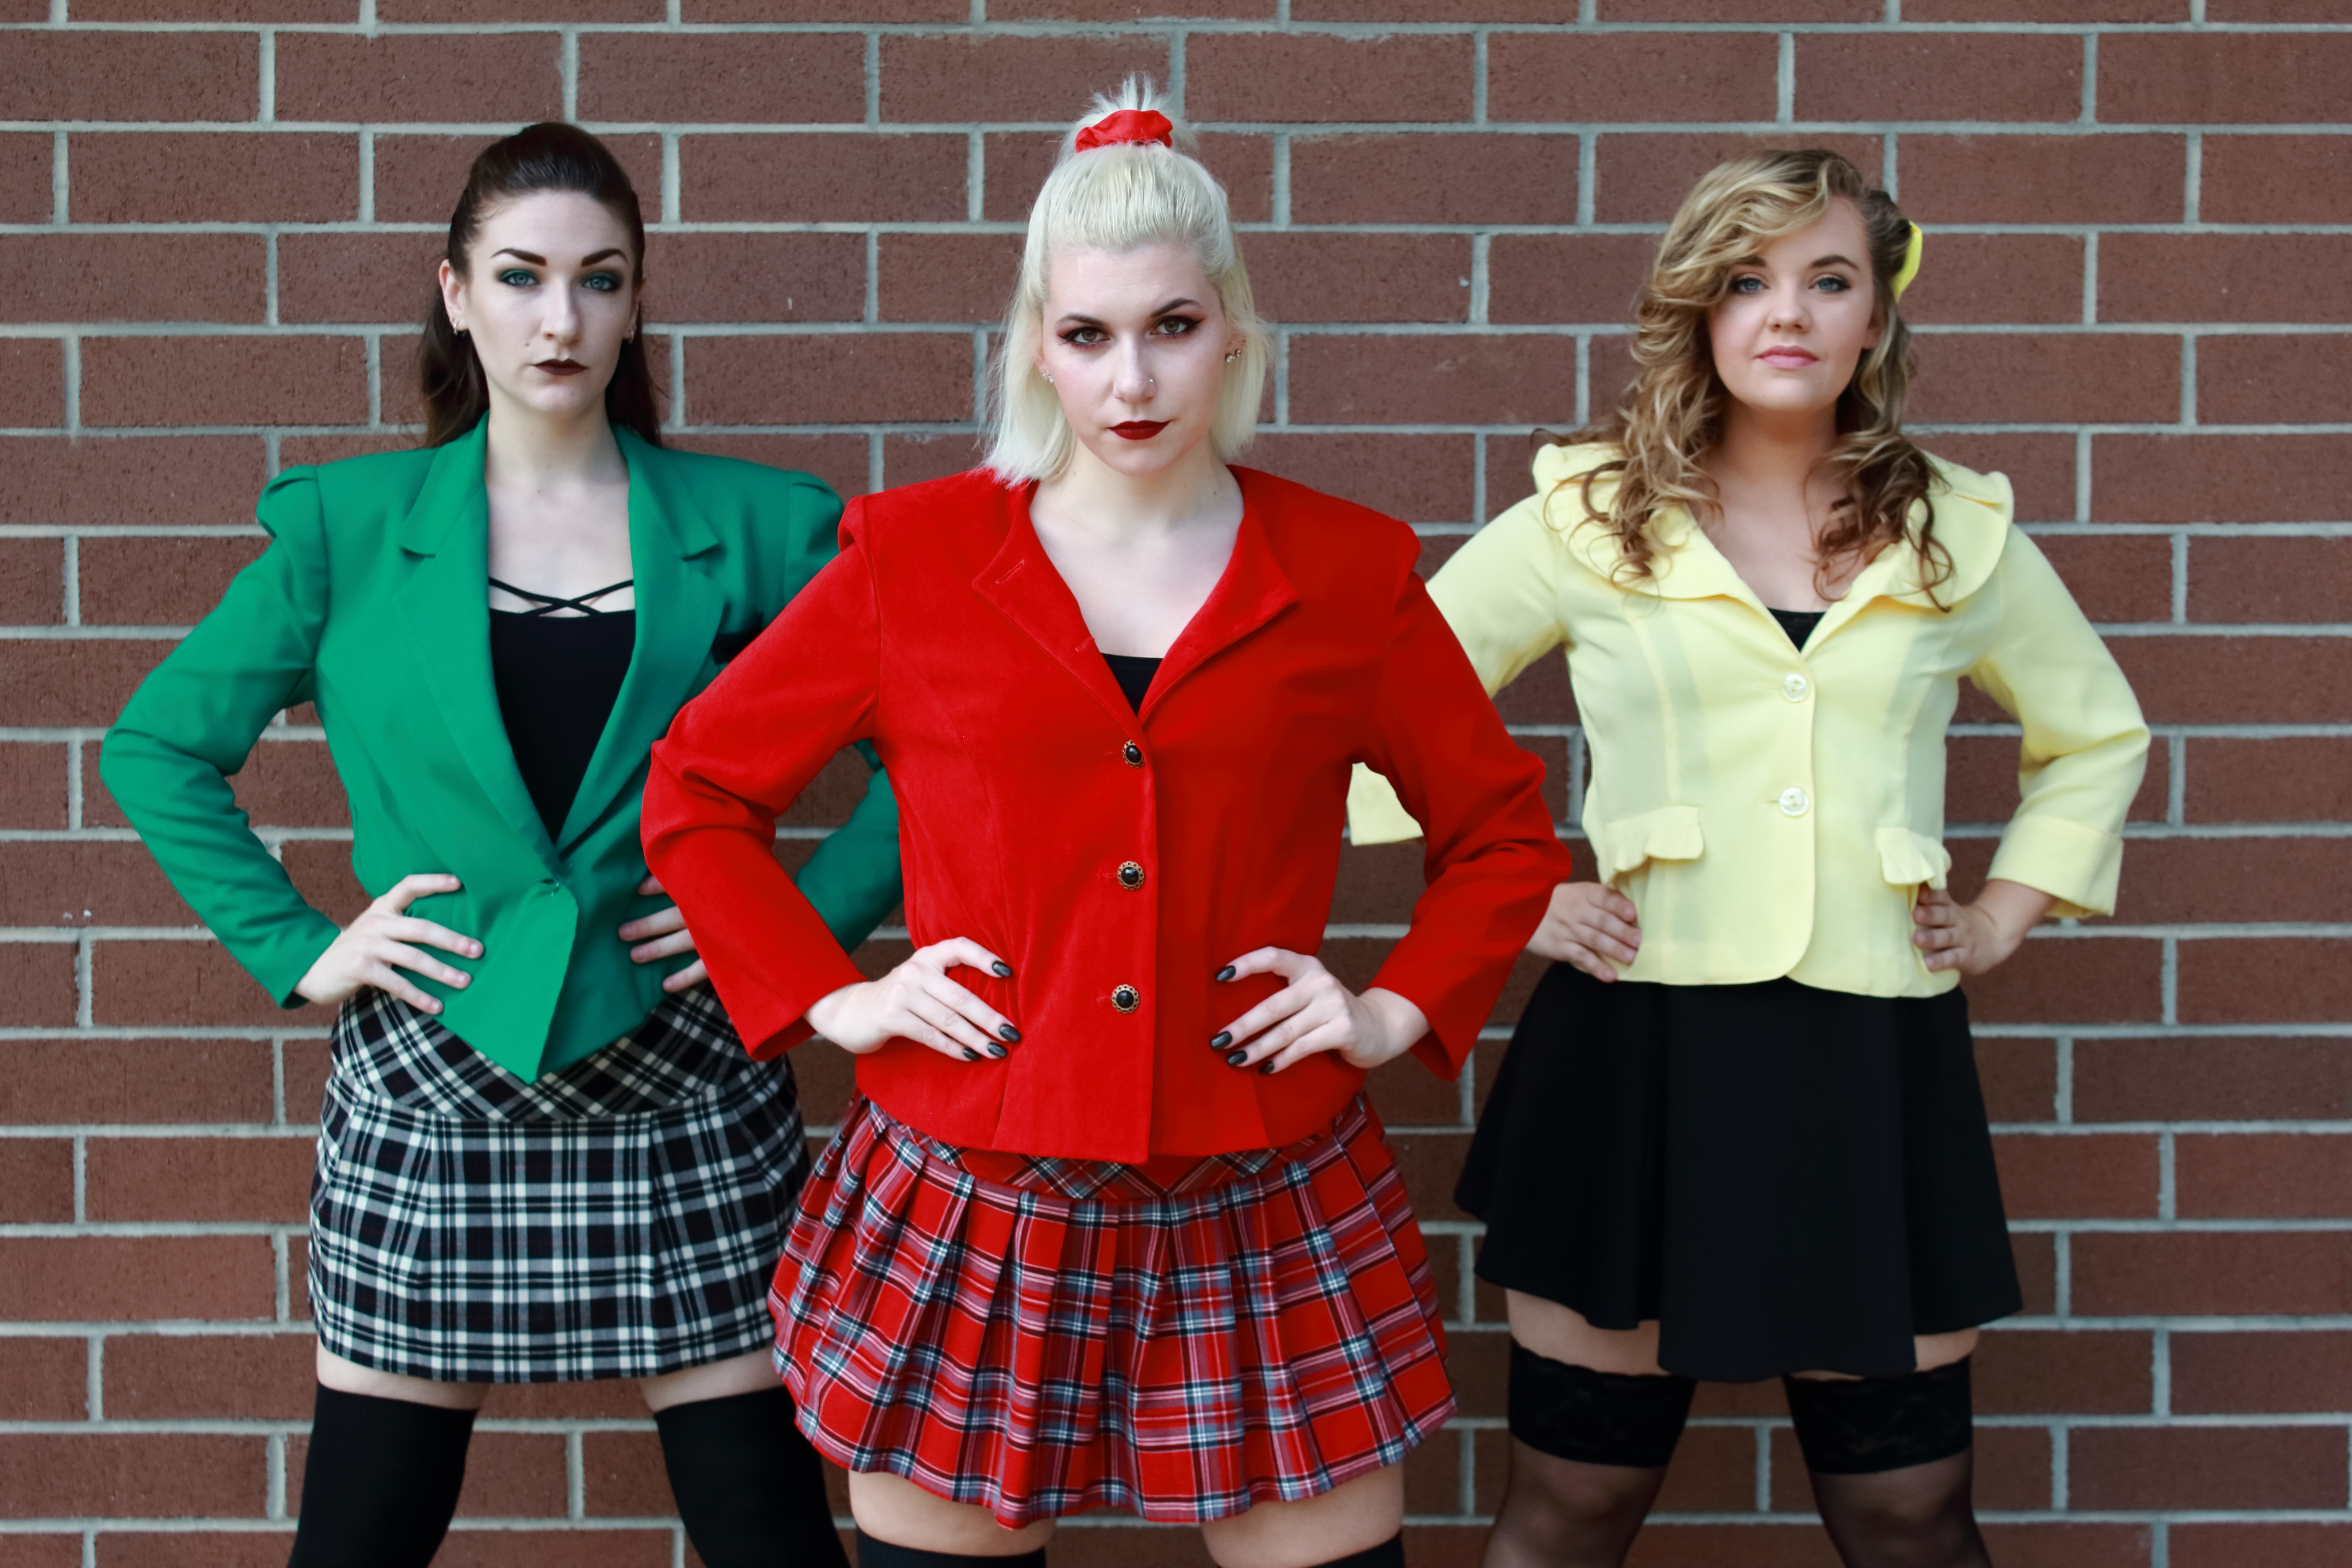 BWW Review: HEATHERS: THE MUSICAL is BIG FUN at Young Artists Theatre!